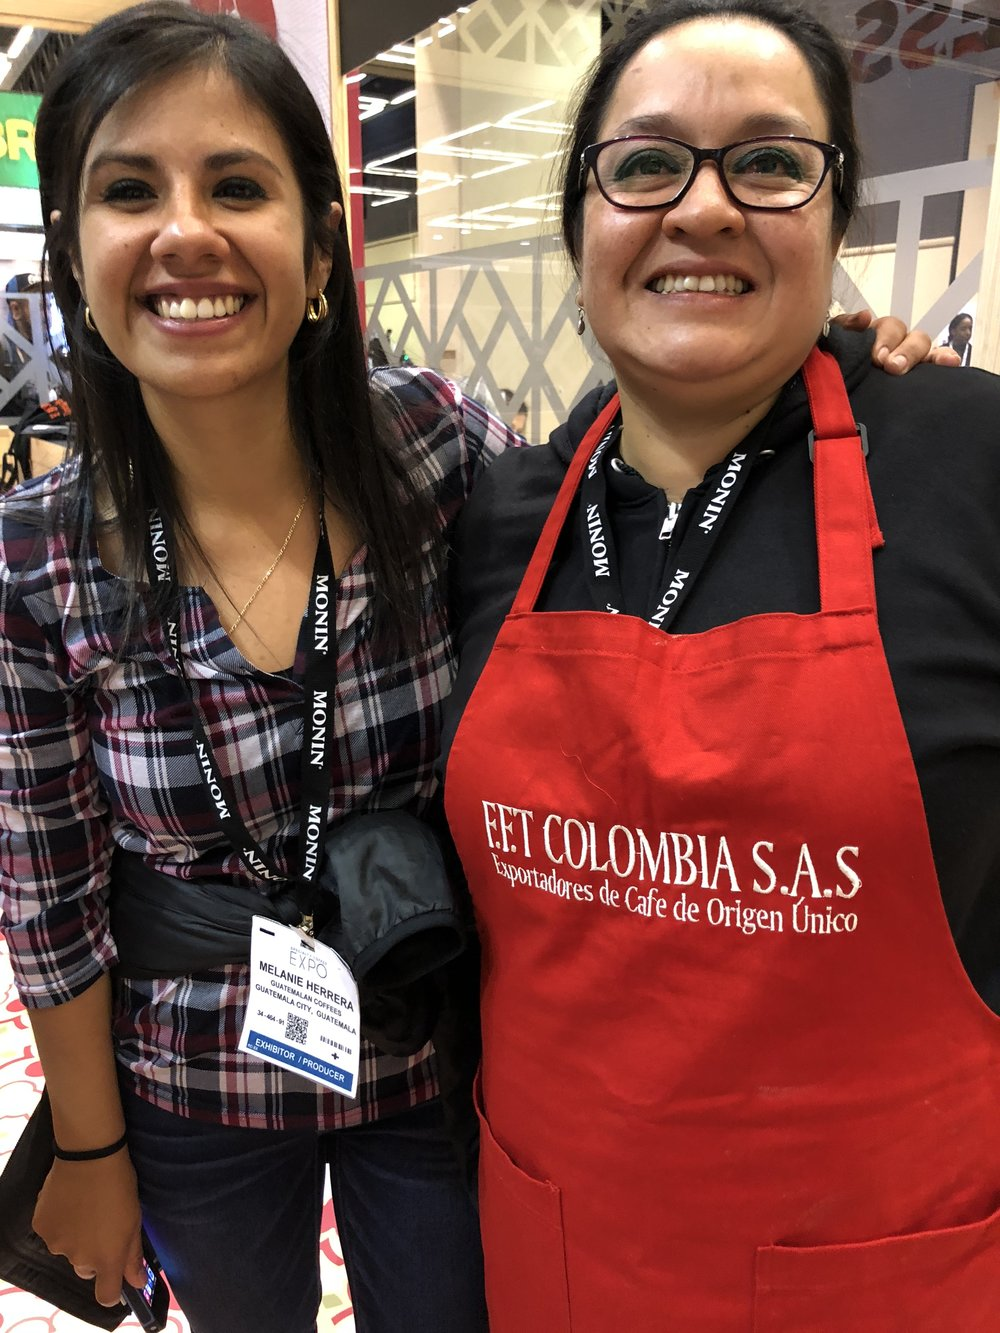 Dulce Barrera (right), winner of the CCS Colombia Tasters Challenge, with Melanie Herrera, both from Bella Vista Mill, Guatemala